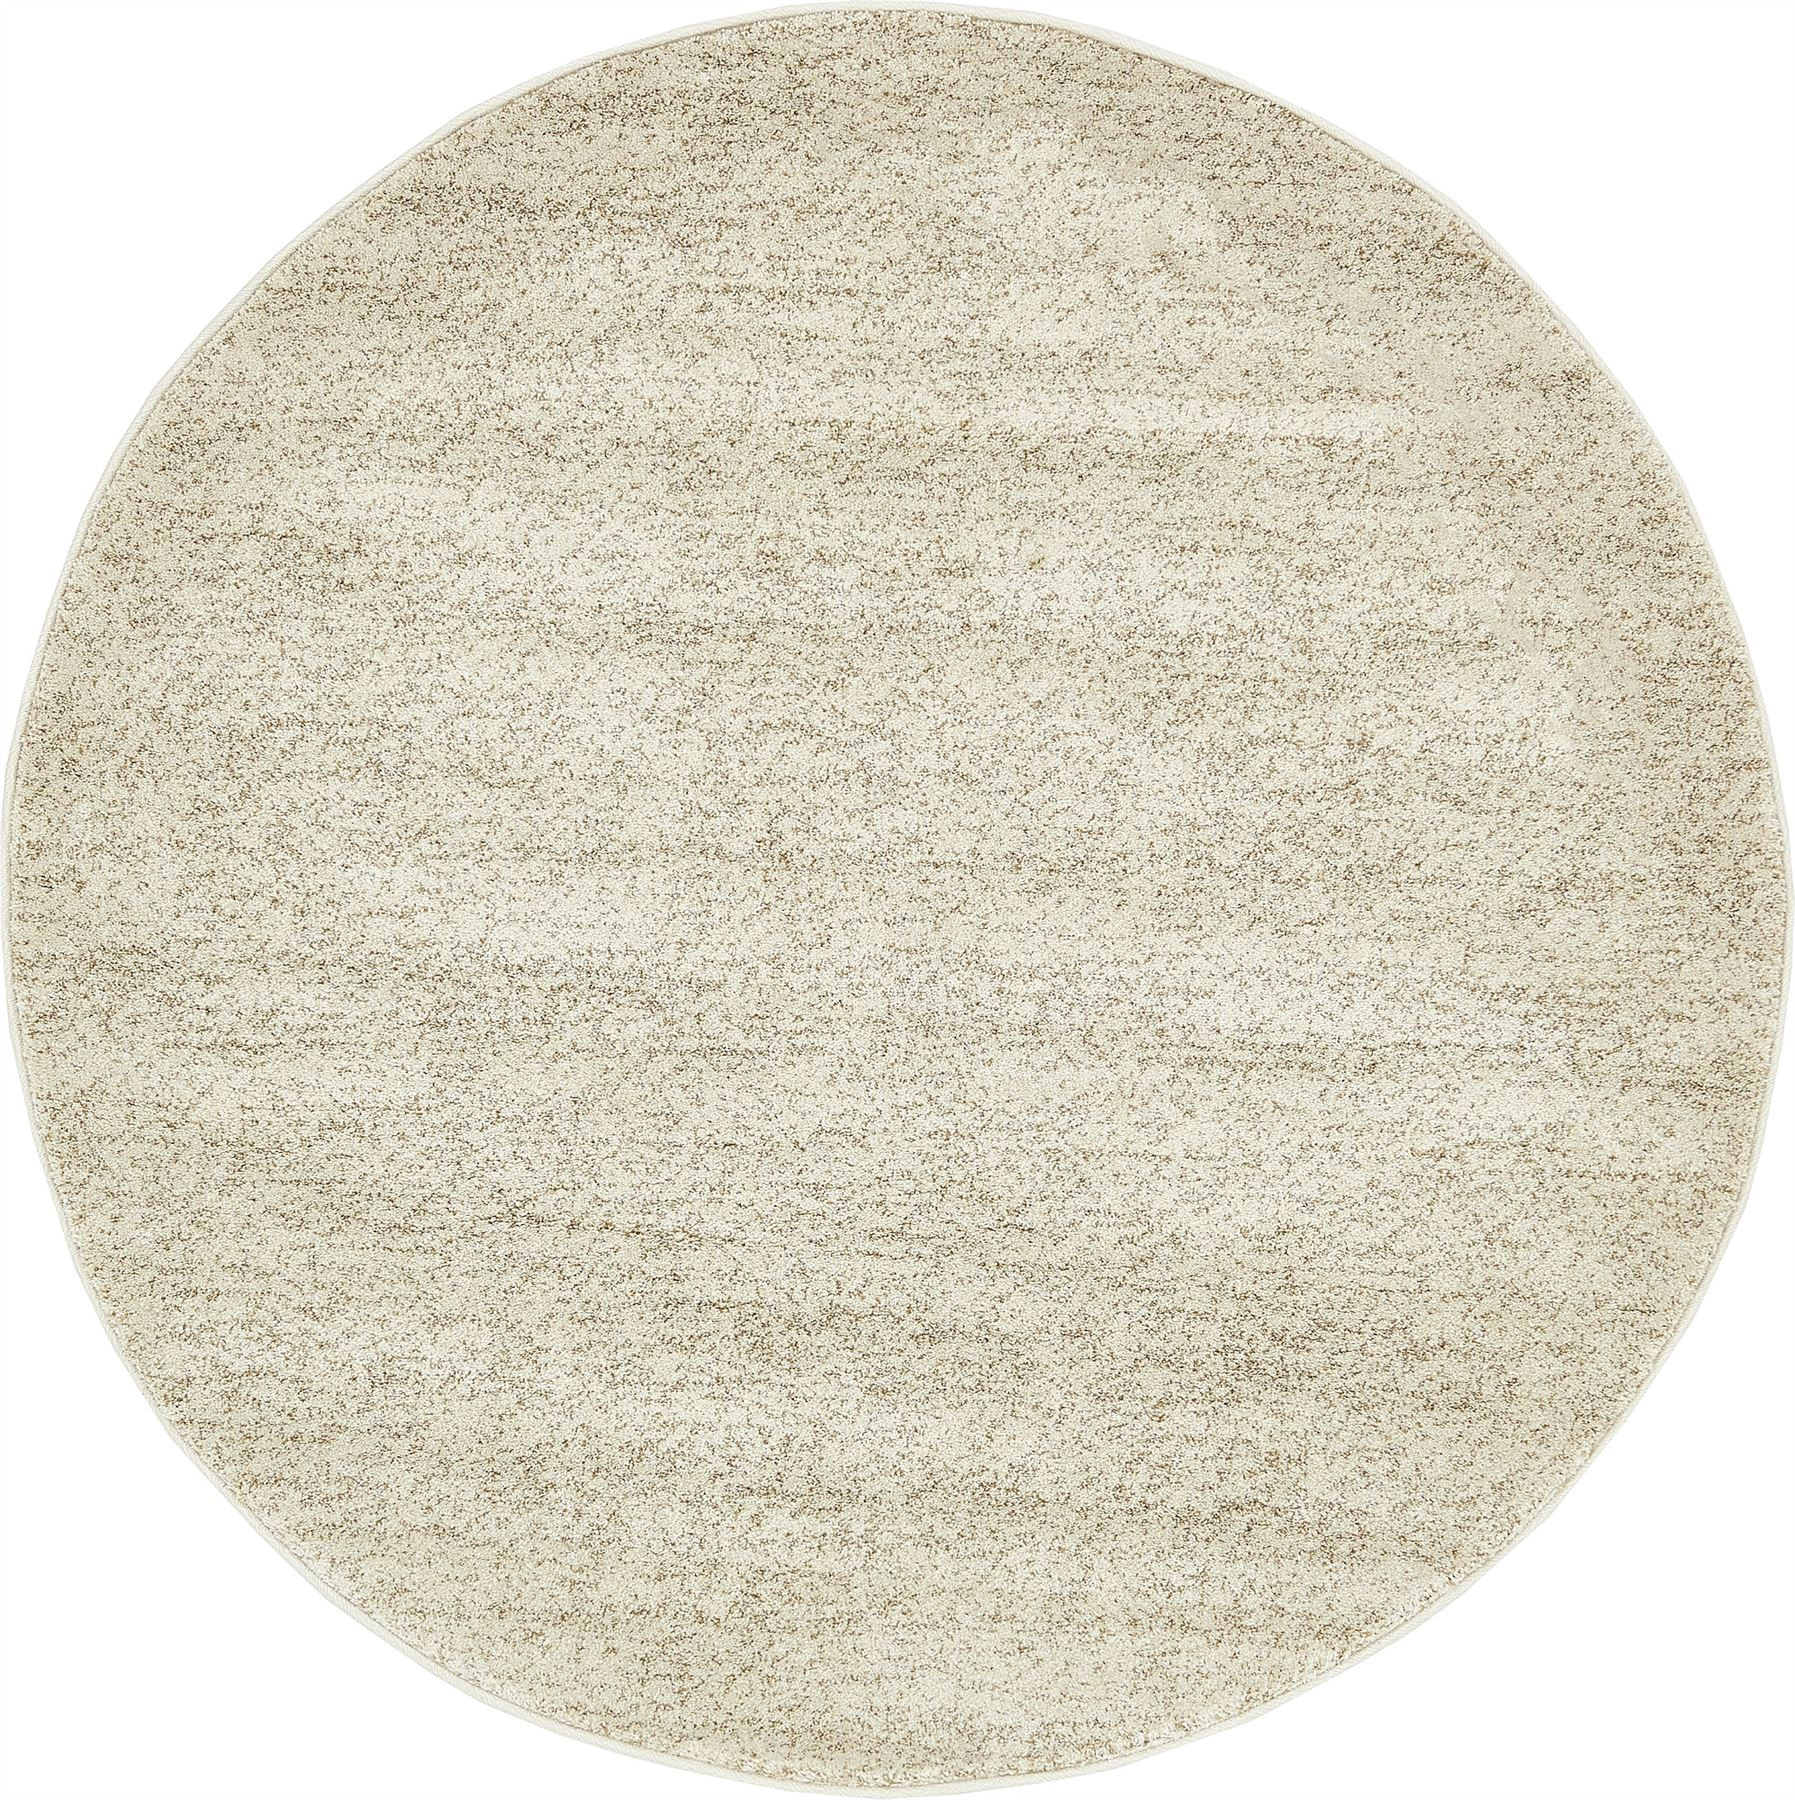 Contemporary area rug solid plain soft large warm carpet for Modern round area rugs